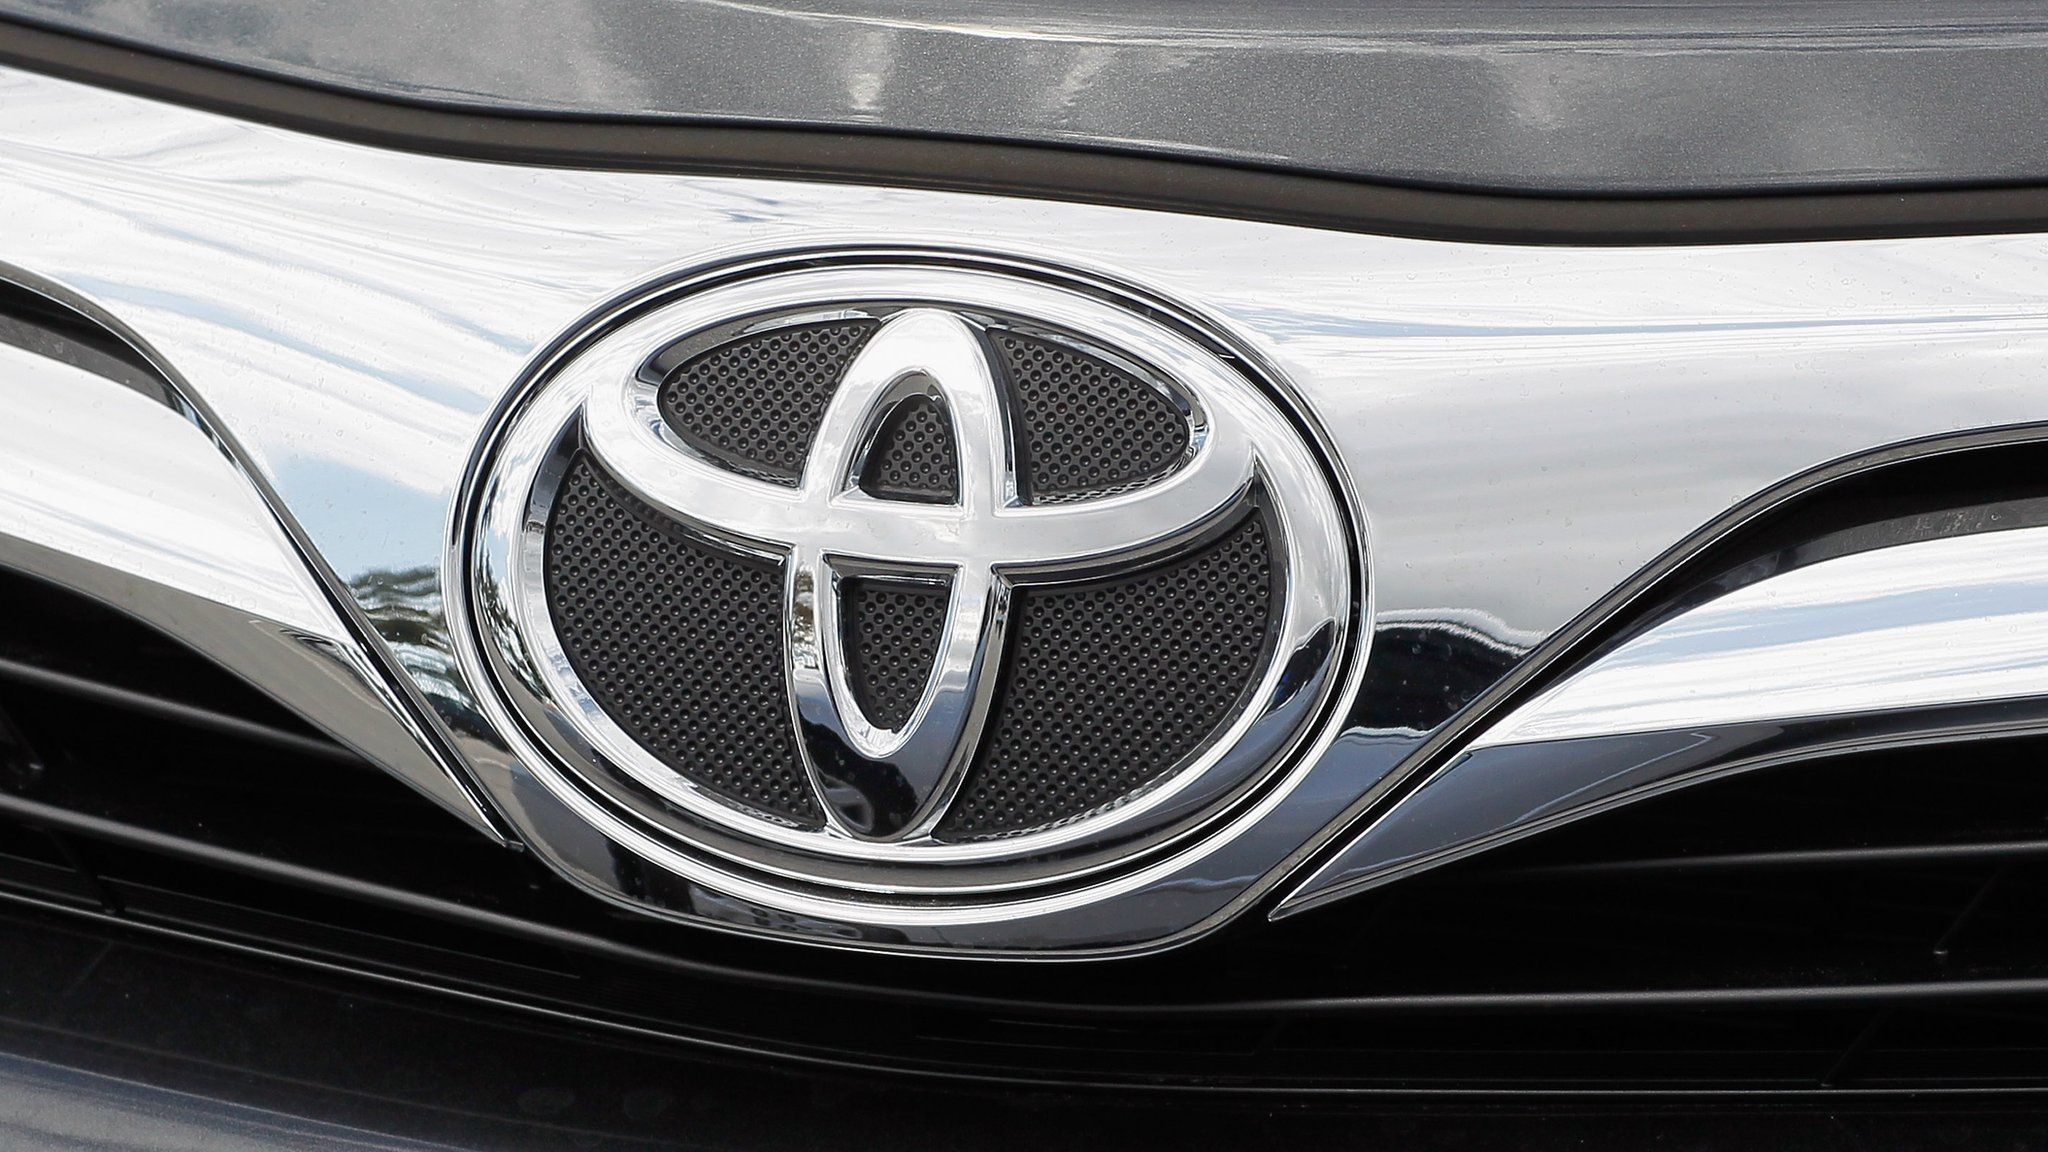 Japanese carmaker Toyota reports a 10% increase in profit, helped by the weak yen and cost cuts.